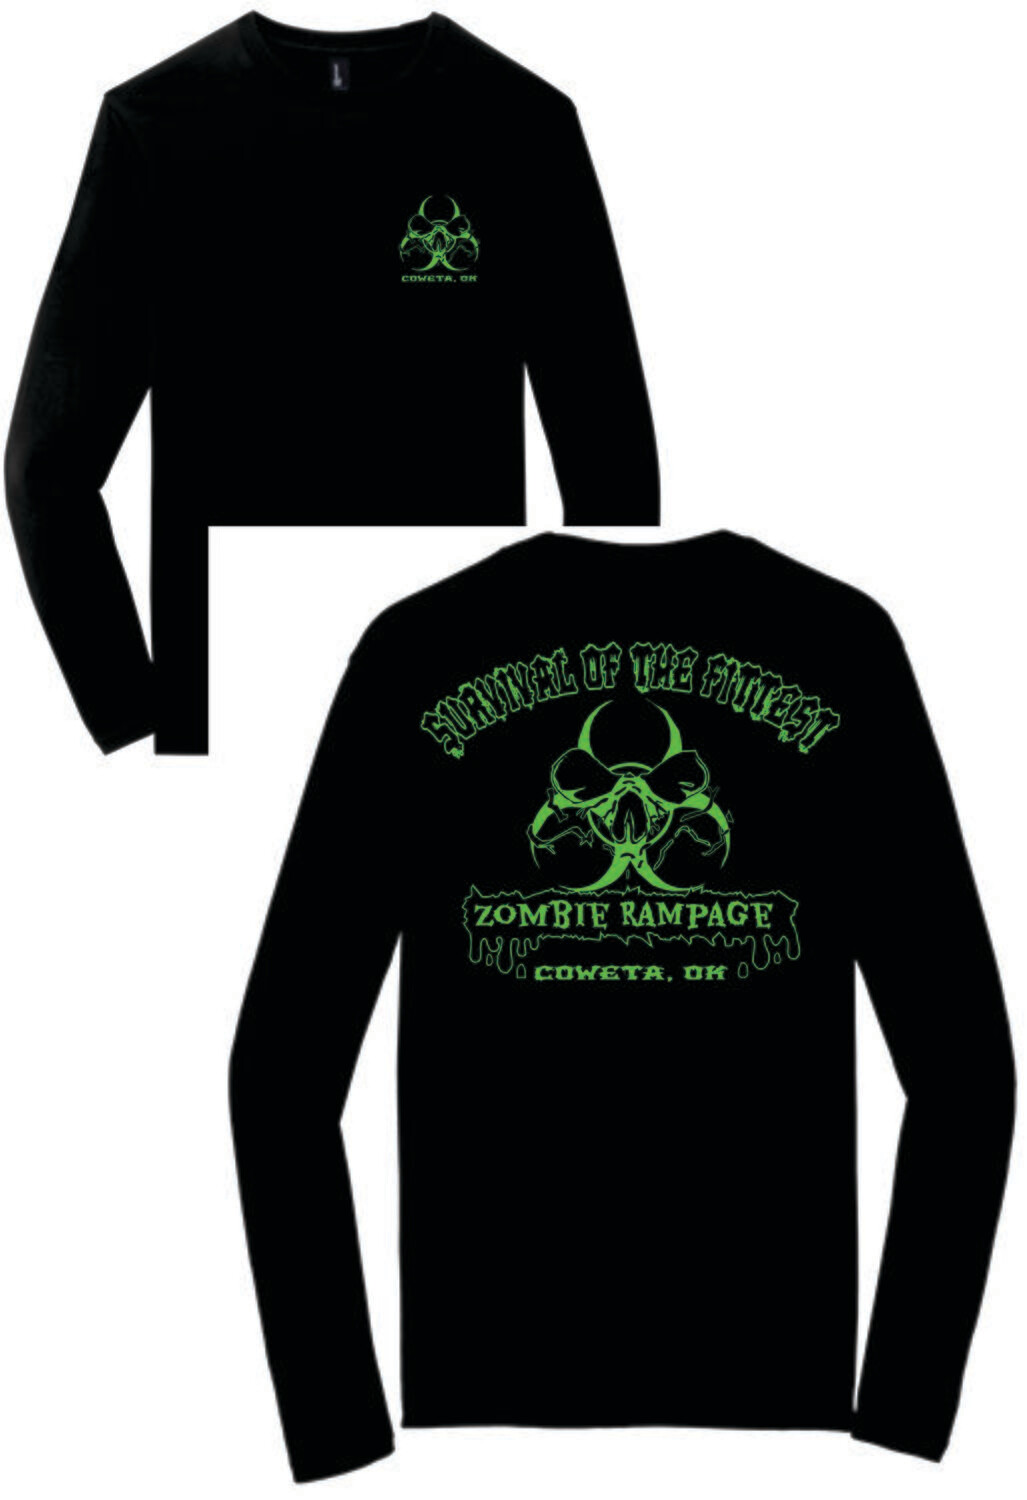 ZOMBIE RAMPAGE ~ DT6200 - District ® Very Important Tee ® LONG SLEEVE